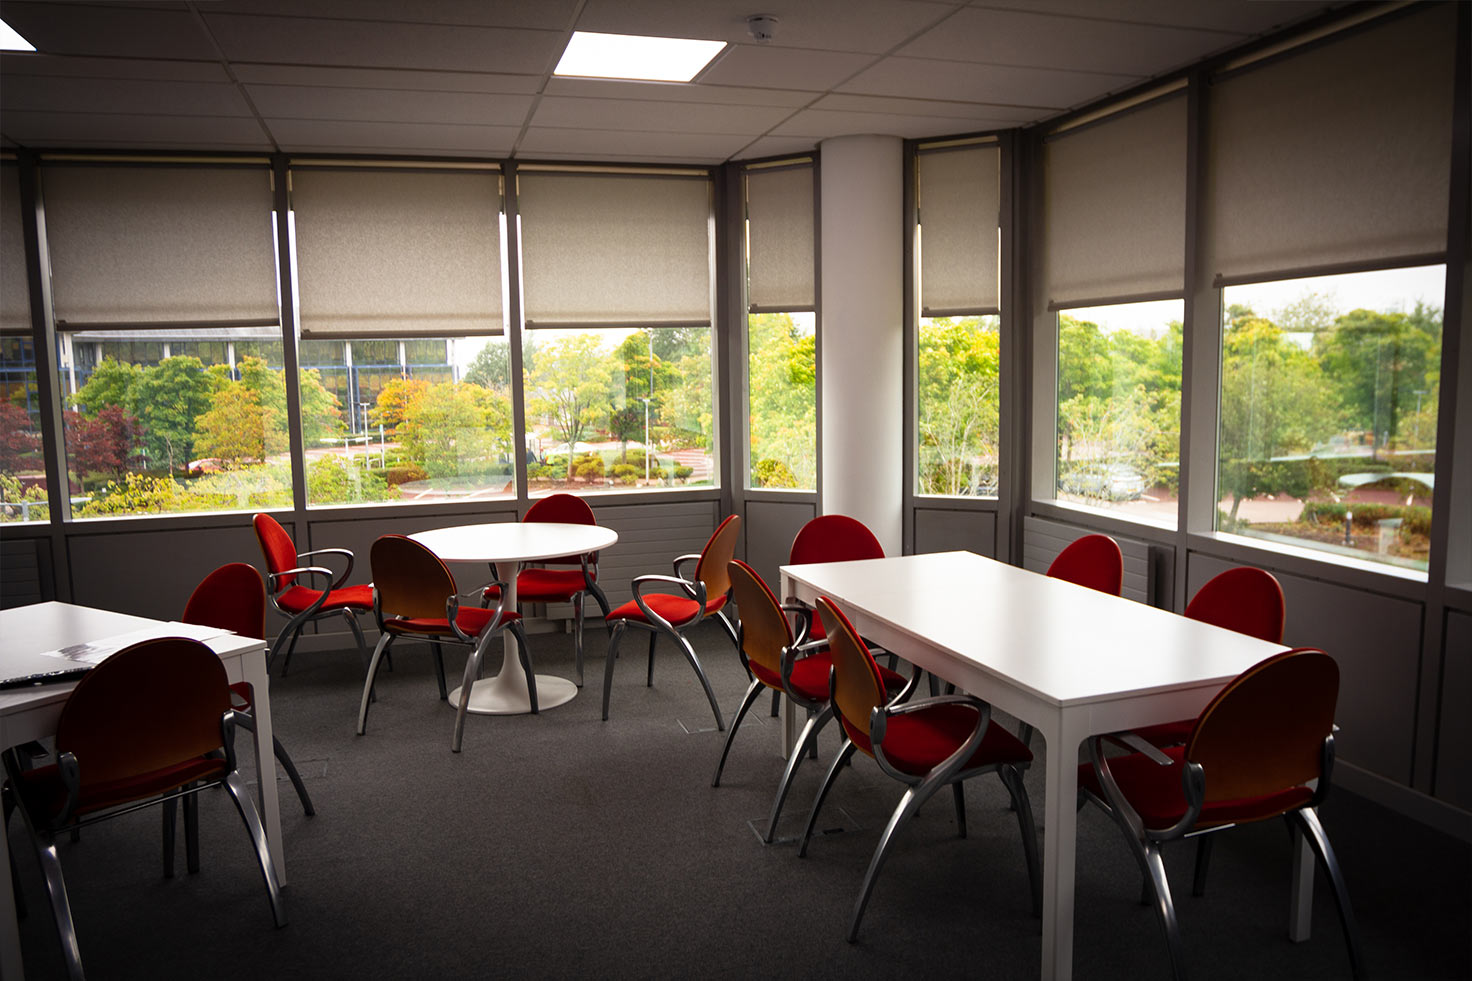 Office Kitchen and eating area at Clyde Blowers Capital Ltd - Designed and Installed by Jack Hyams